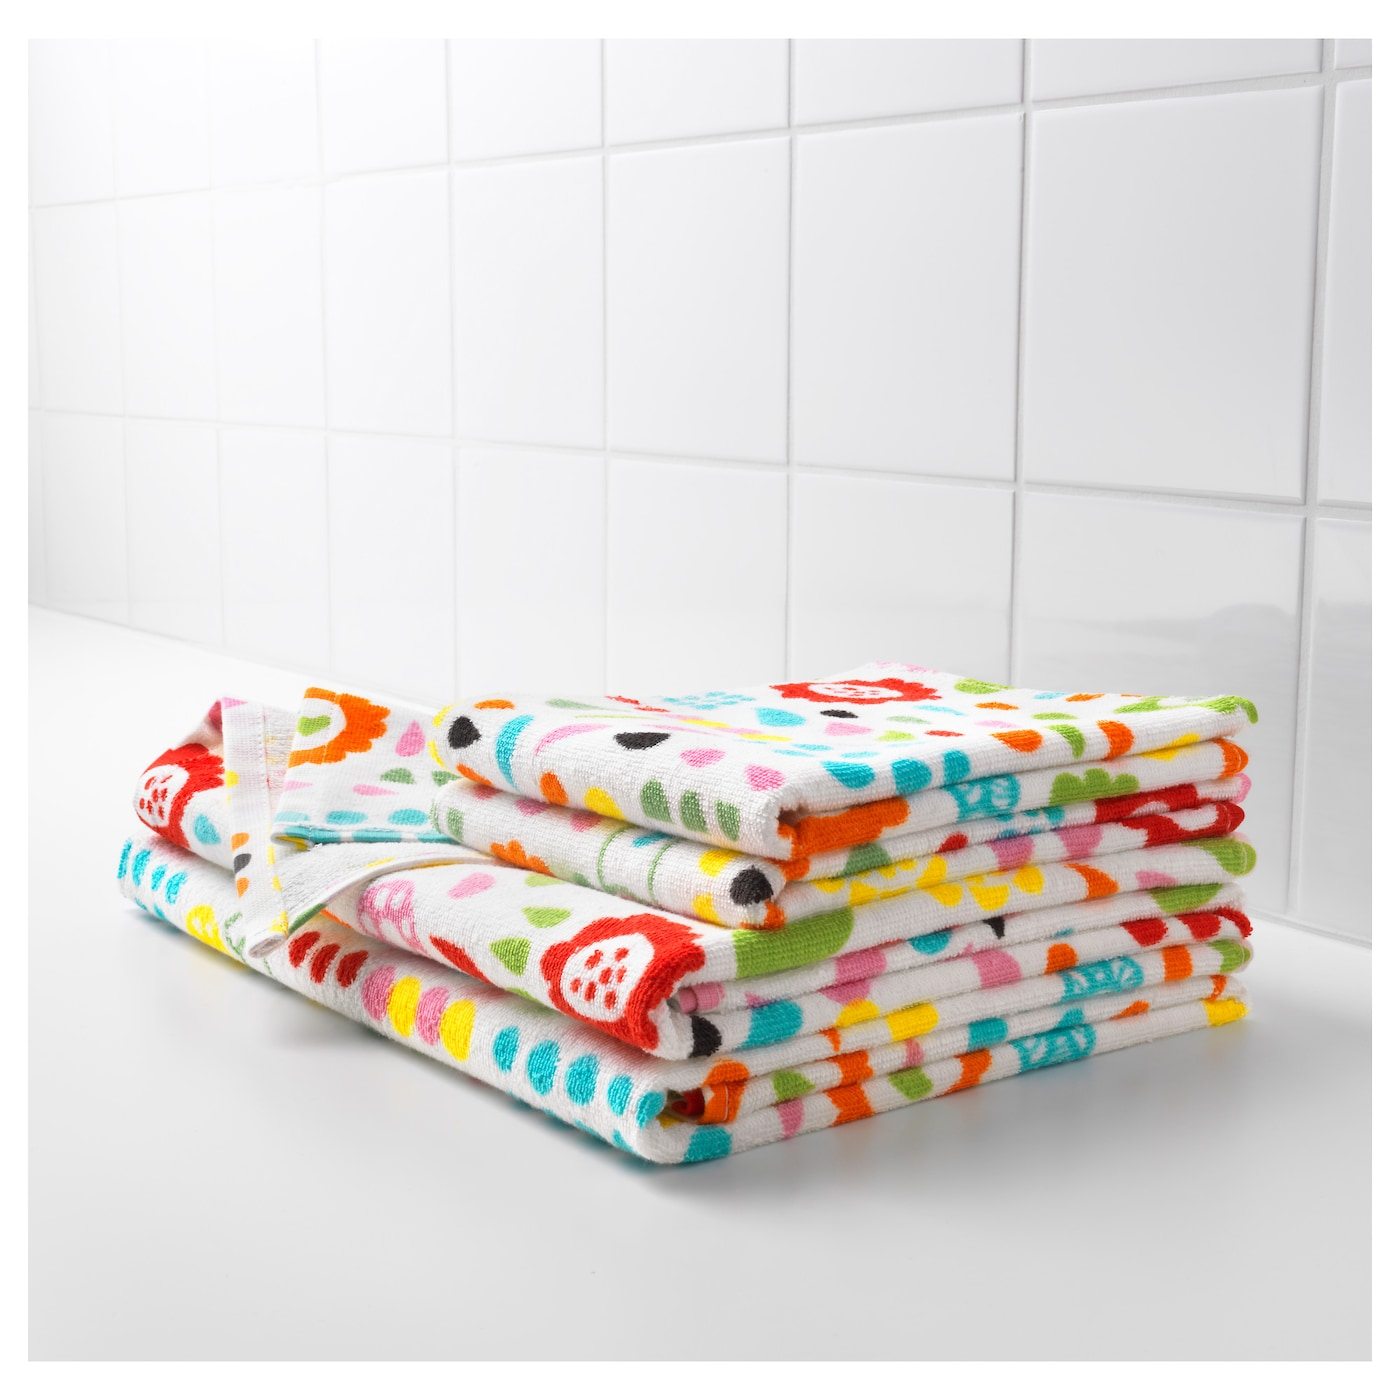 IKEA LÖNNERN bath towel A terry towel that is soft and absorbent (weight 390 g/m²).